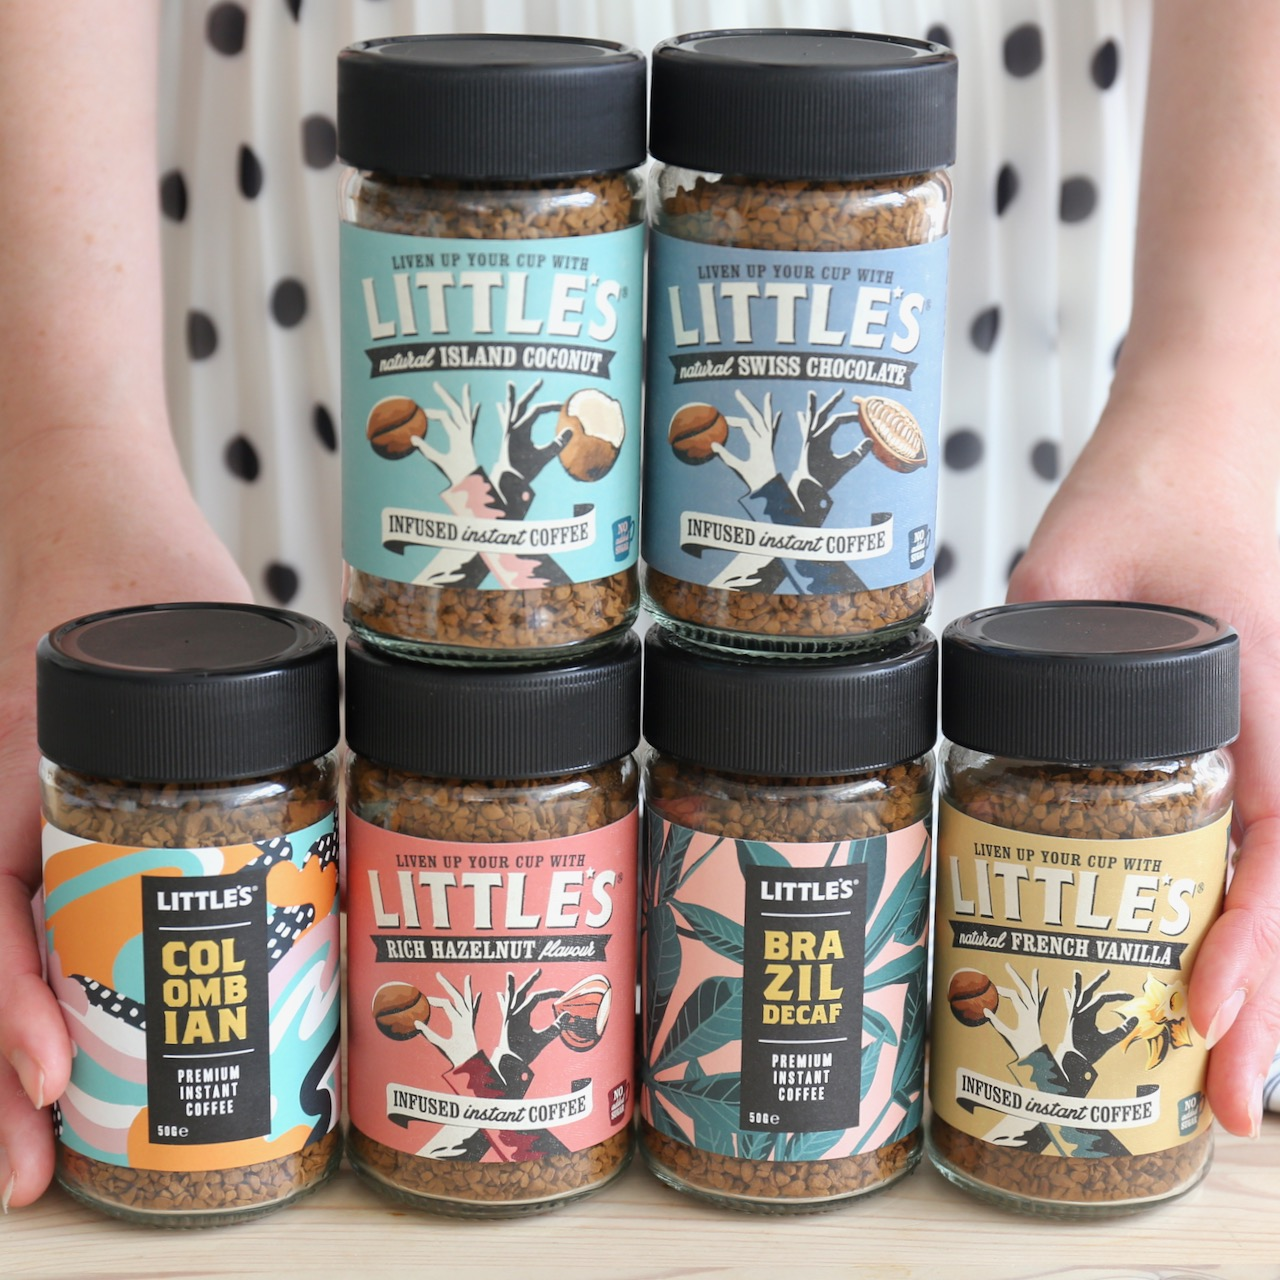 We are Little's flavour infused instant coffee